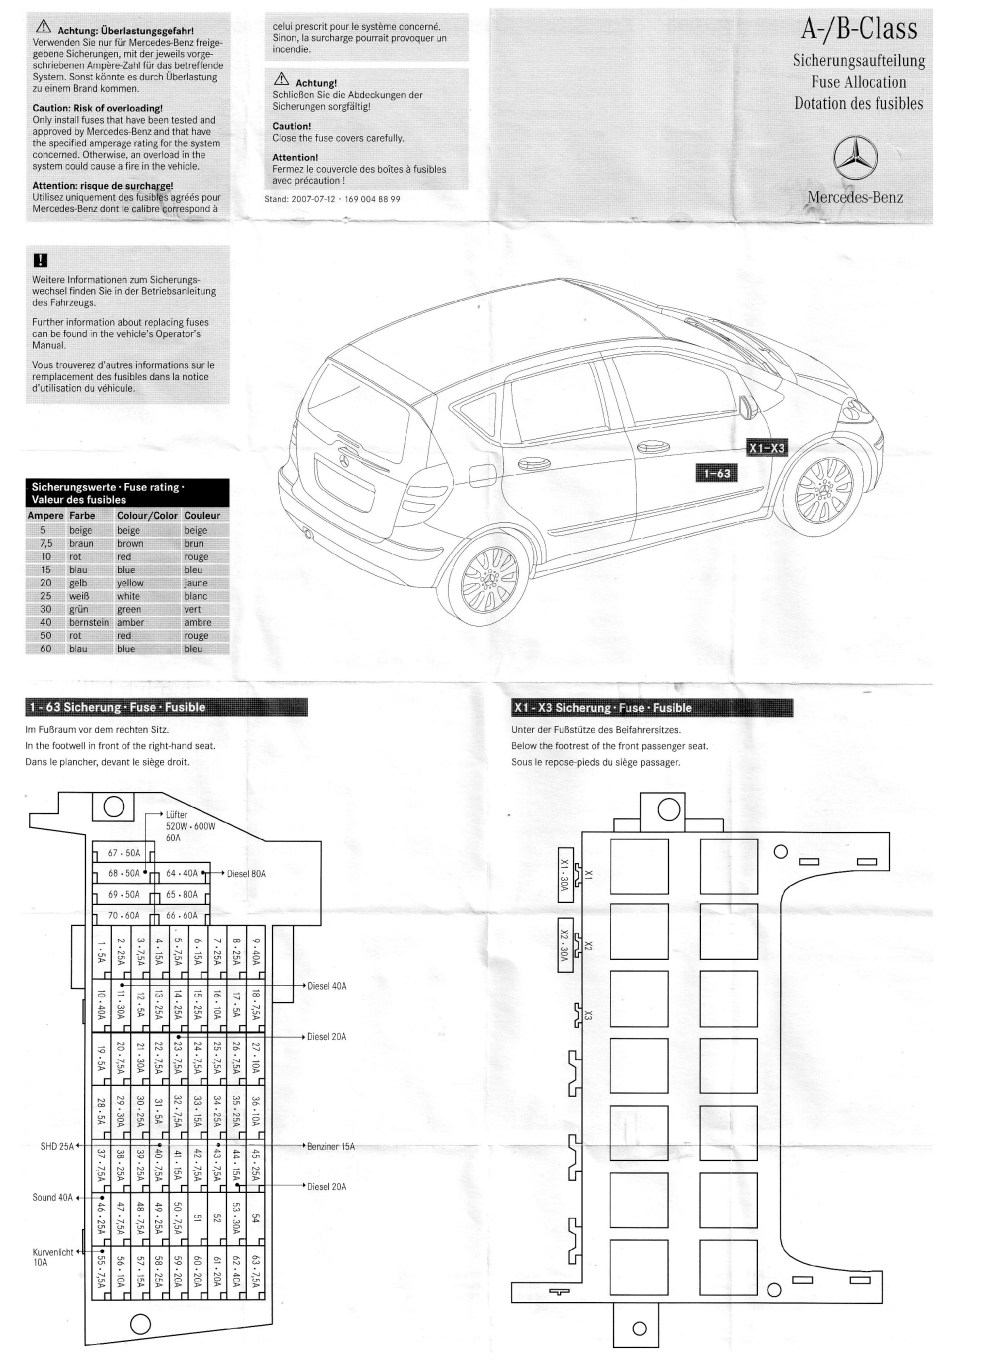 medium resolution of mercedes benz a160 fuse box wiring diagram 2000 mercedes s430 fuse chart mercedes benz c class w204 fuse box diagram